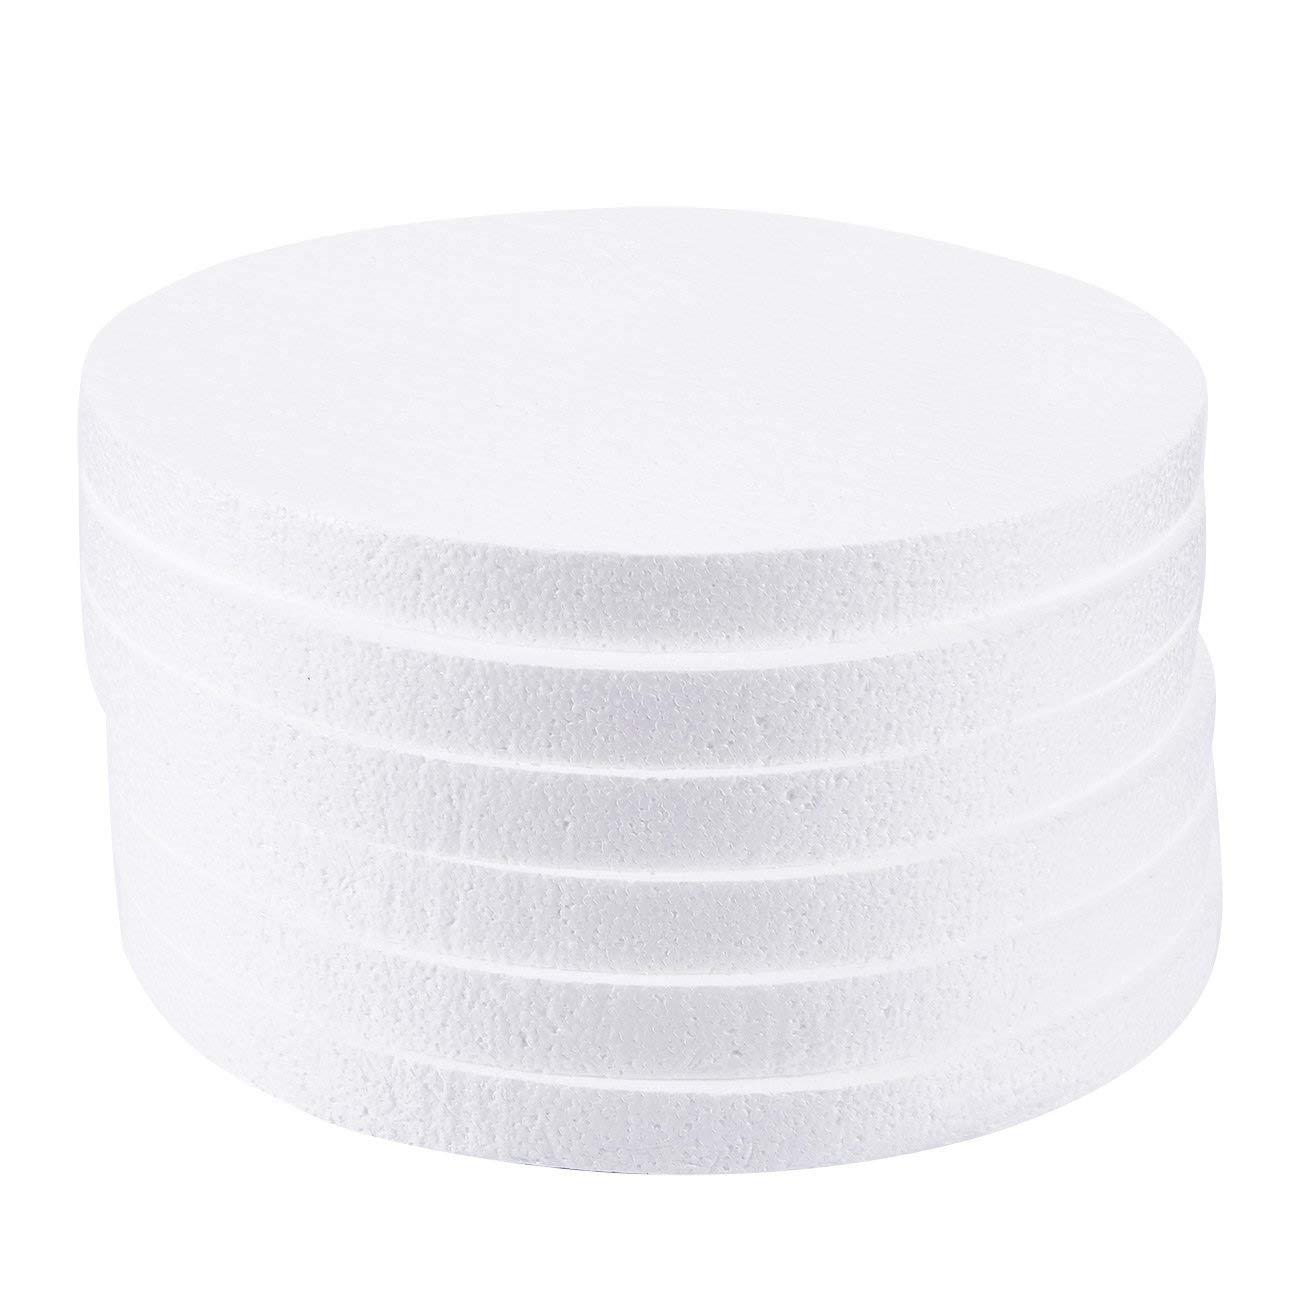 Craft Foam Circle - 6-Pack Polystyrene Foam Disc Foam Round for Sculpture, Modeling, DIY Arts and Crafts - White, 12 x 12 x 1 inches